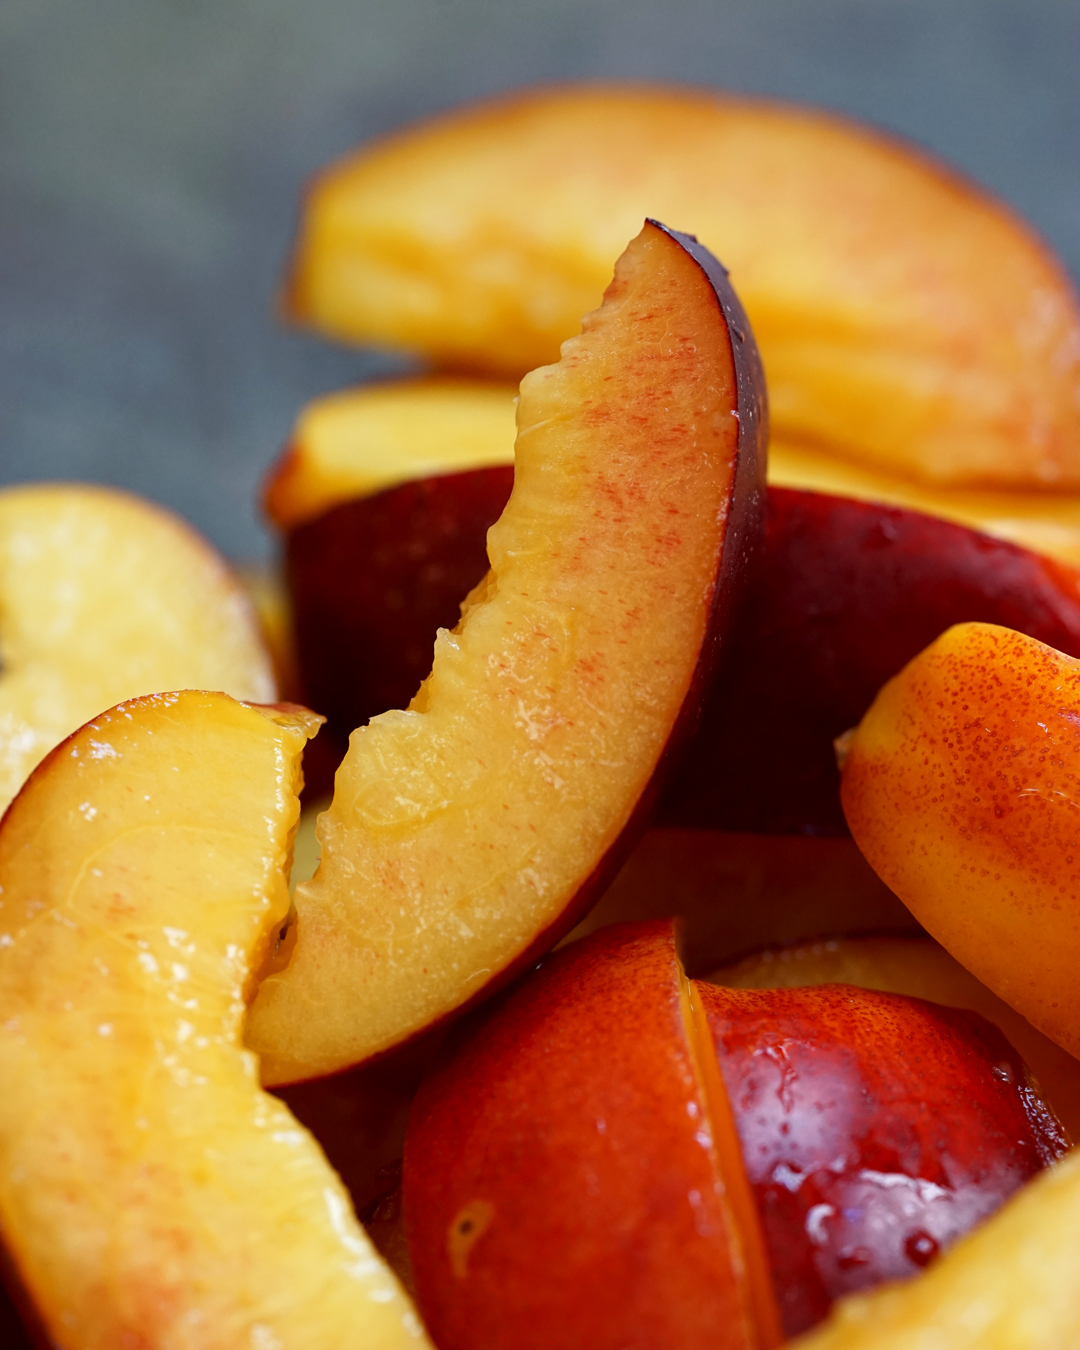 Wash, core, and slice the nectarines